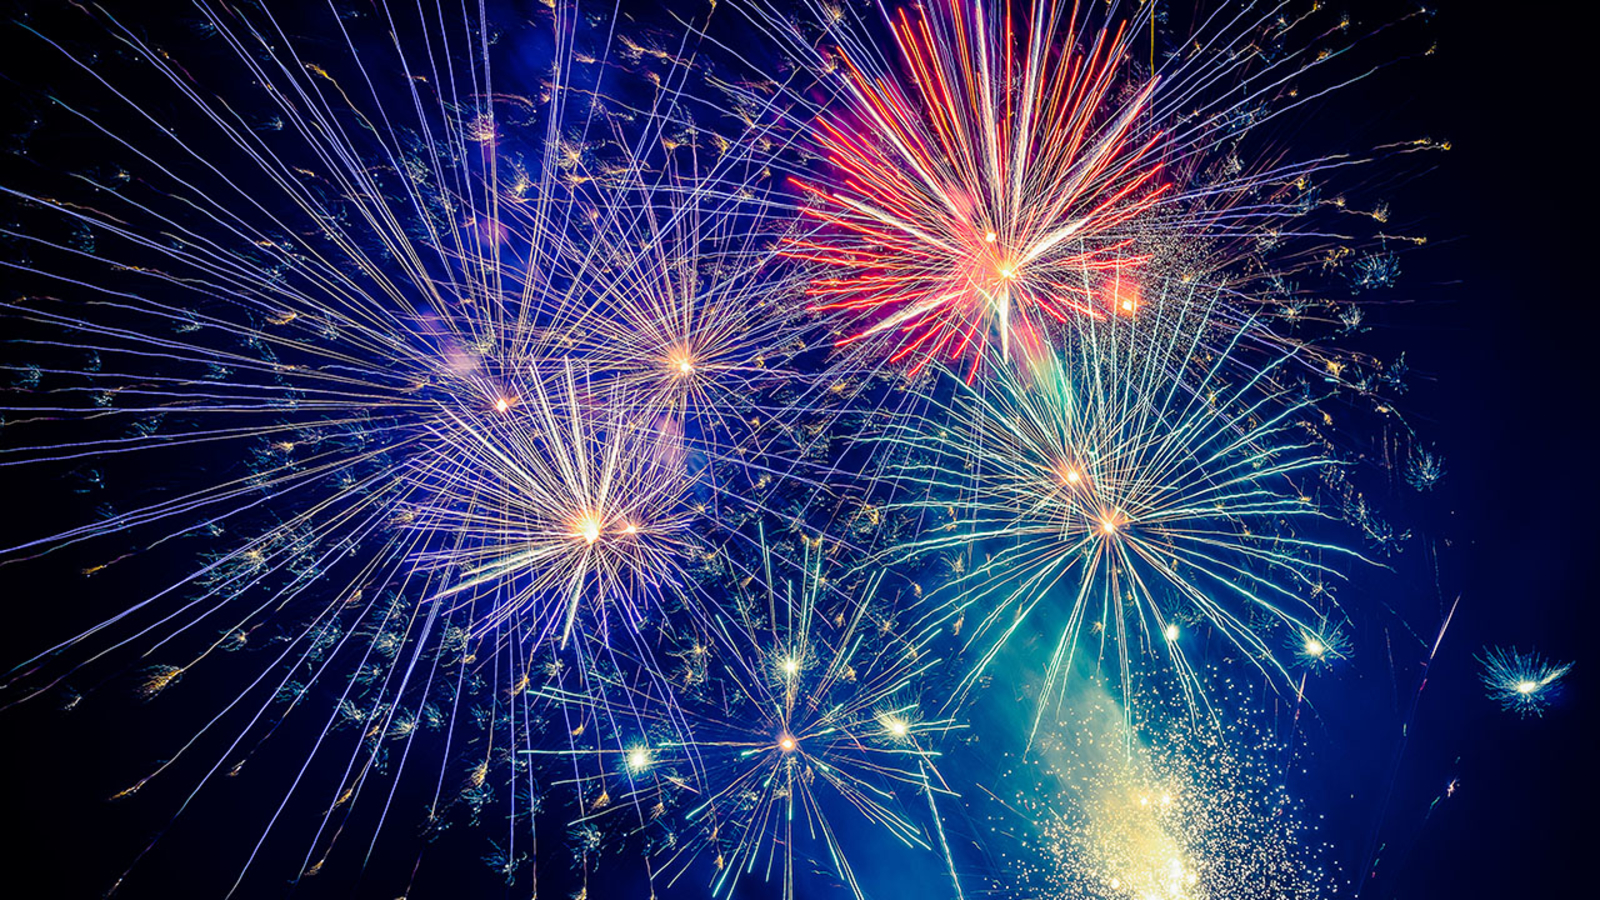 Fireworks 2020: 4th of July Chicago area shows, events - ABC7 Chicago